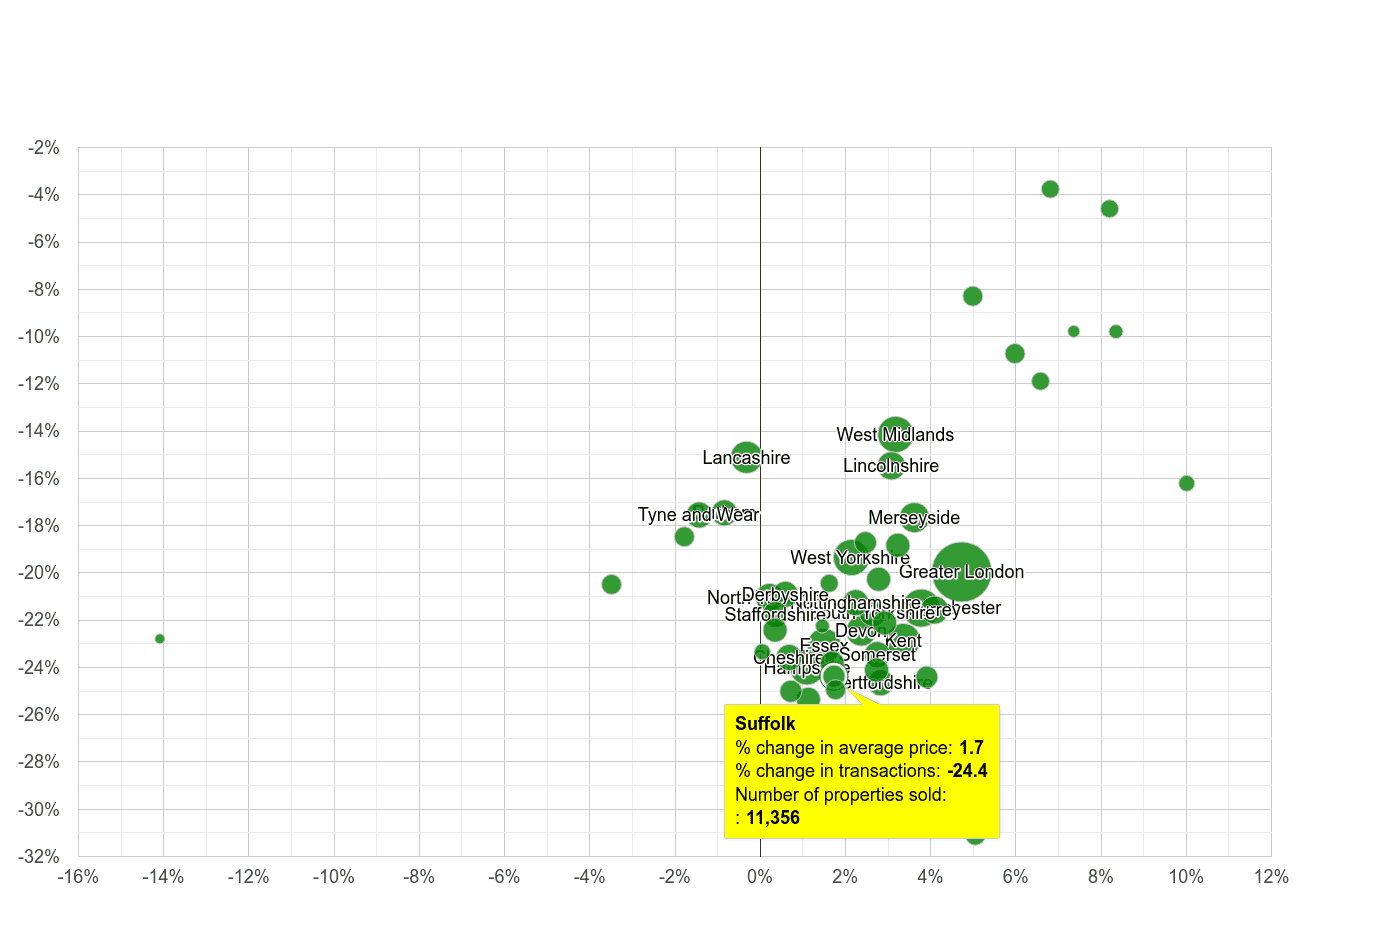 Suffolk property price and sales volume change relative to other counties